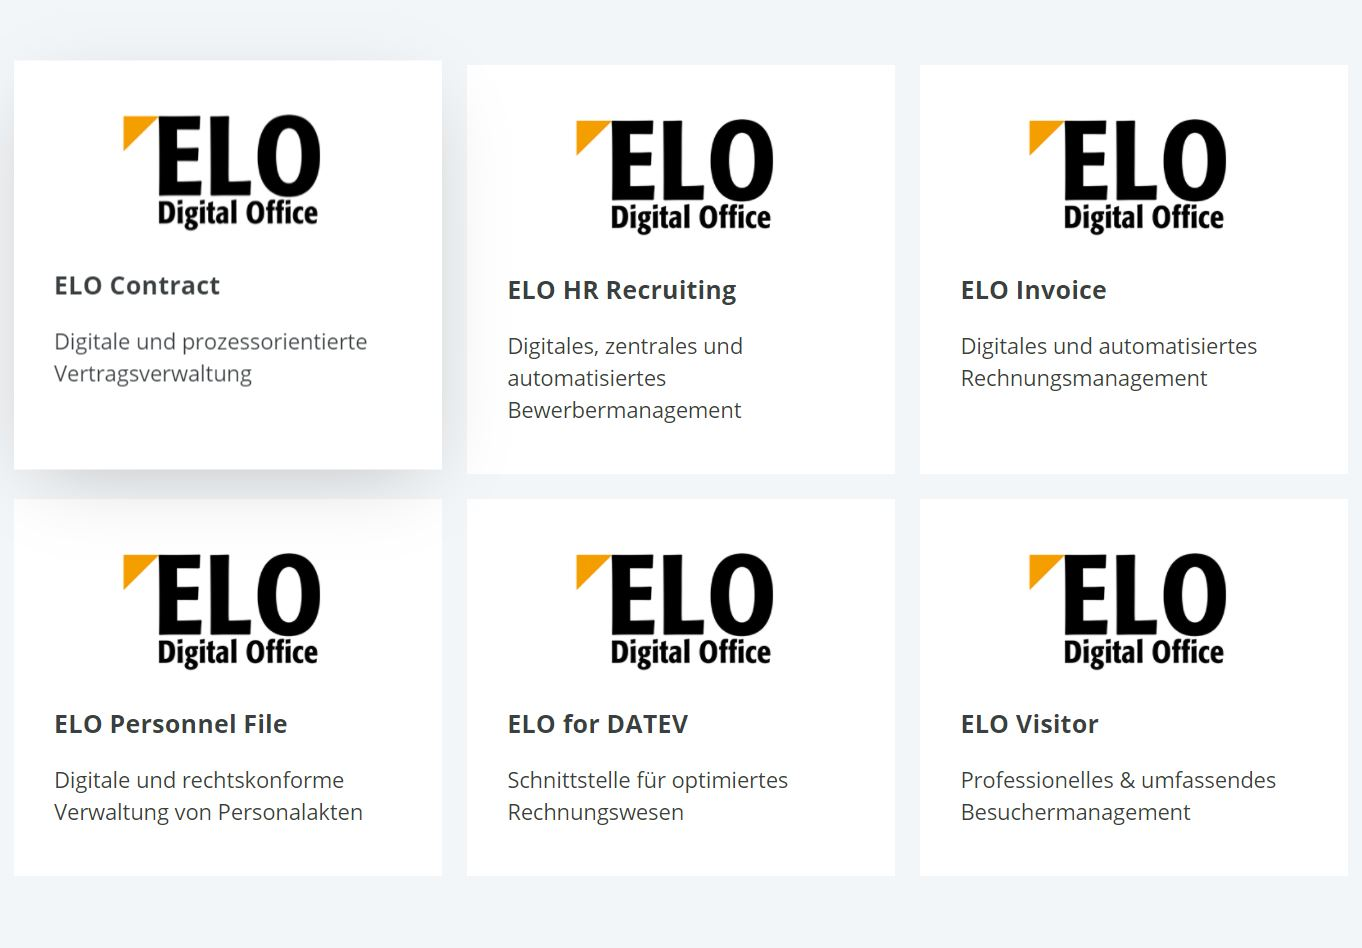 ELO Business Solutions